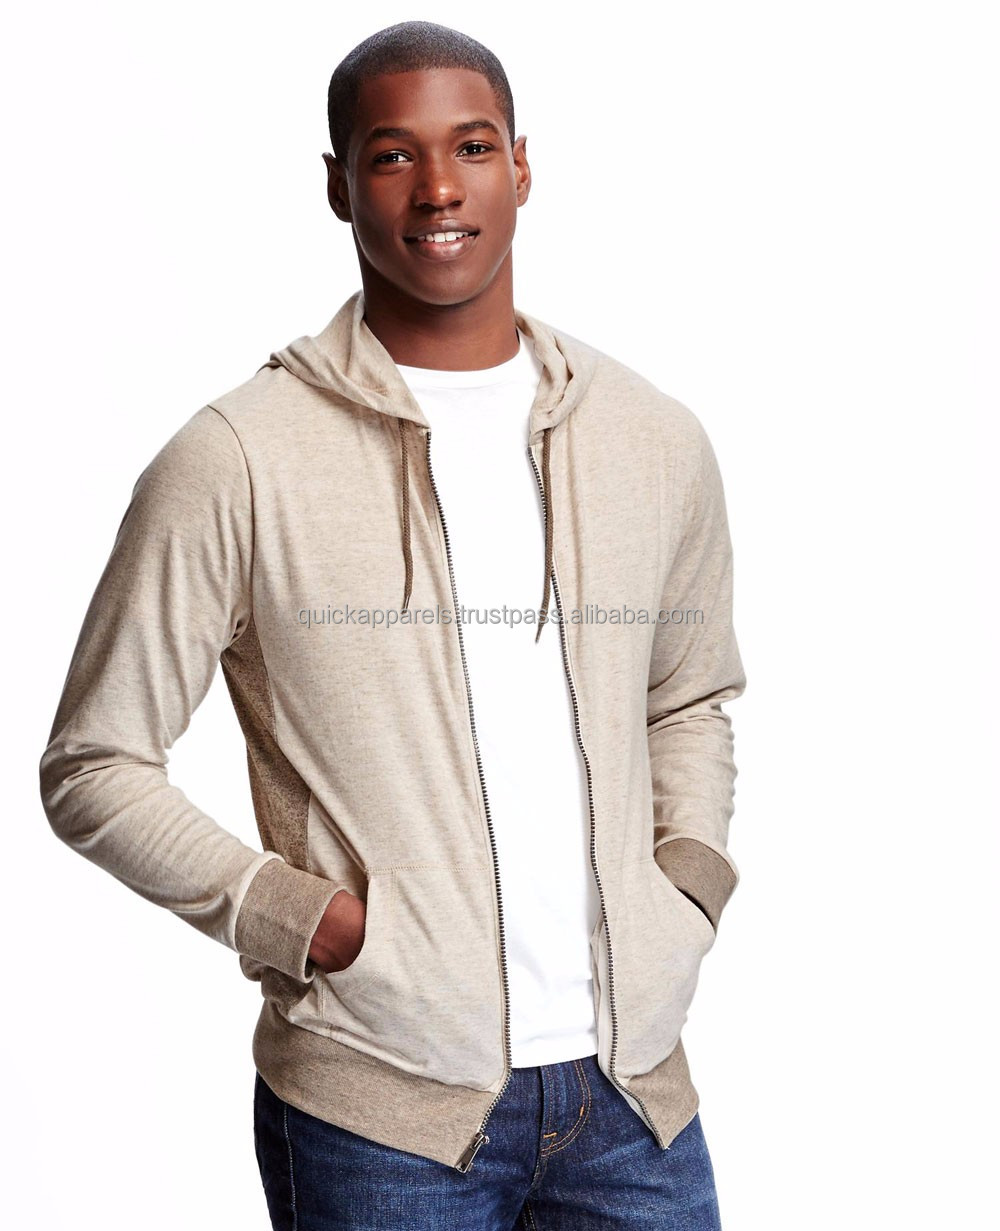 Wholesale zipper pullover sweatshirt blank high quality sublimation hoodies